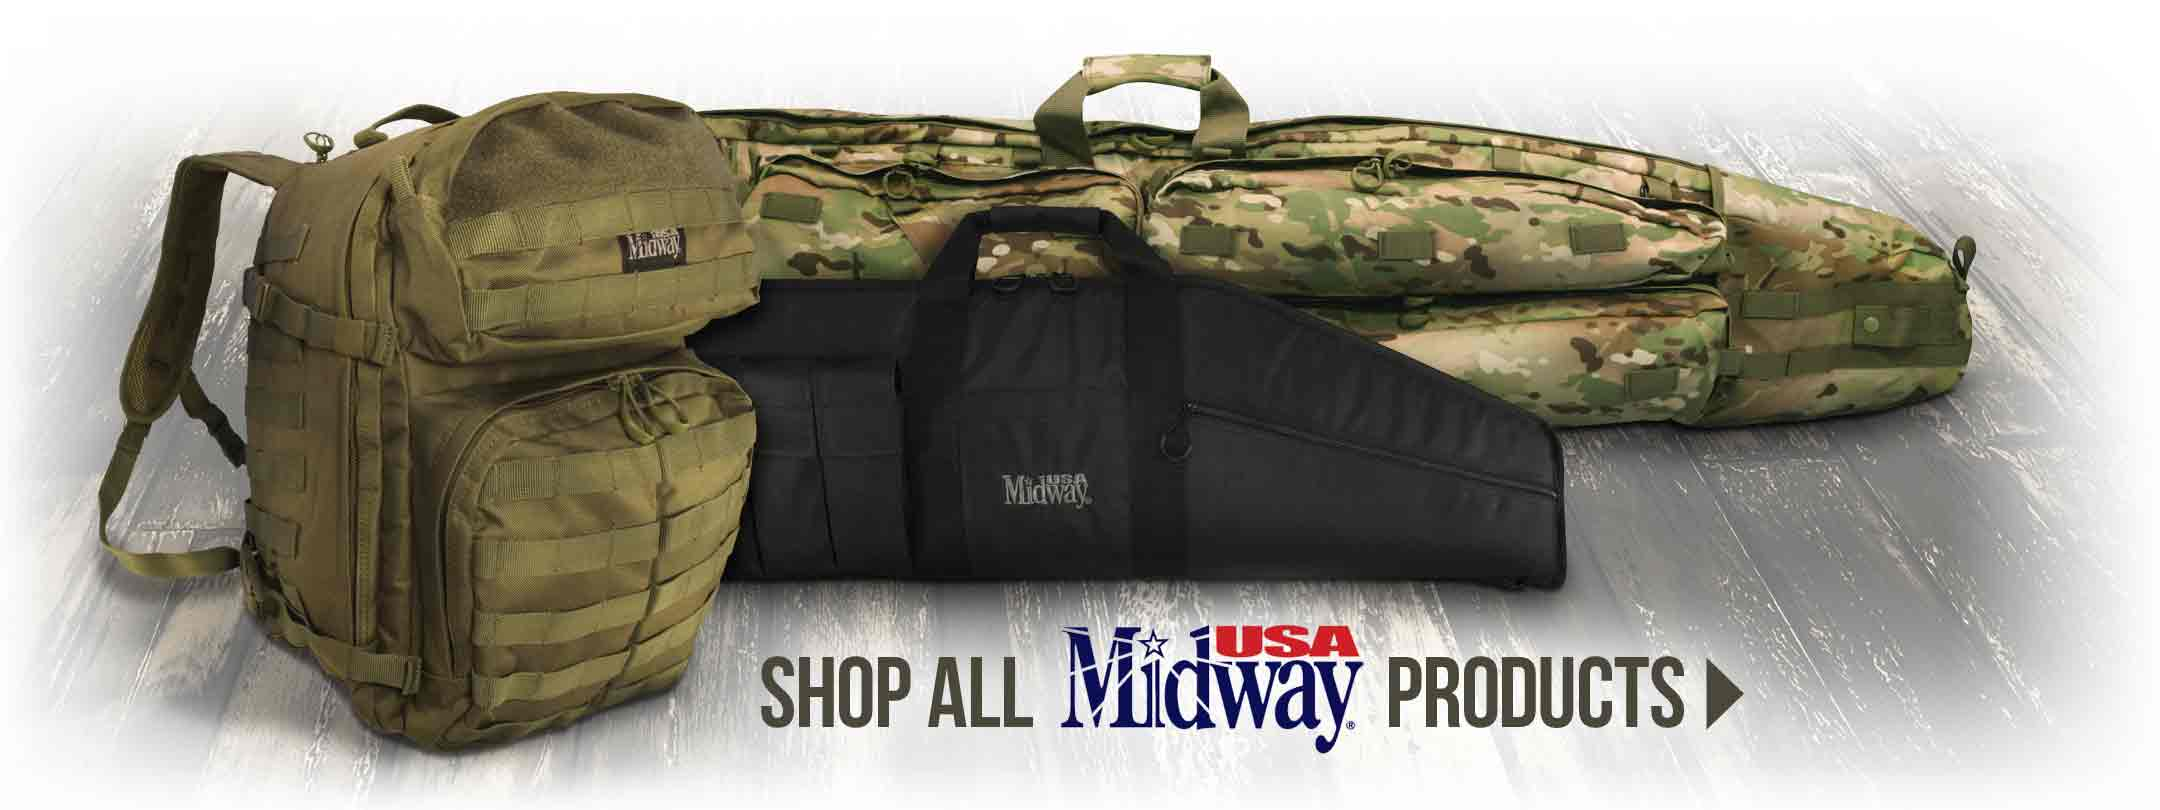 Shop All MidwayUSA Products